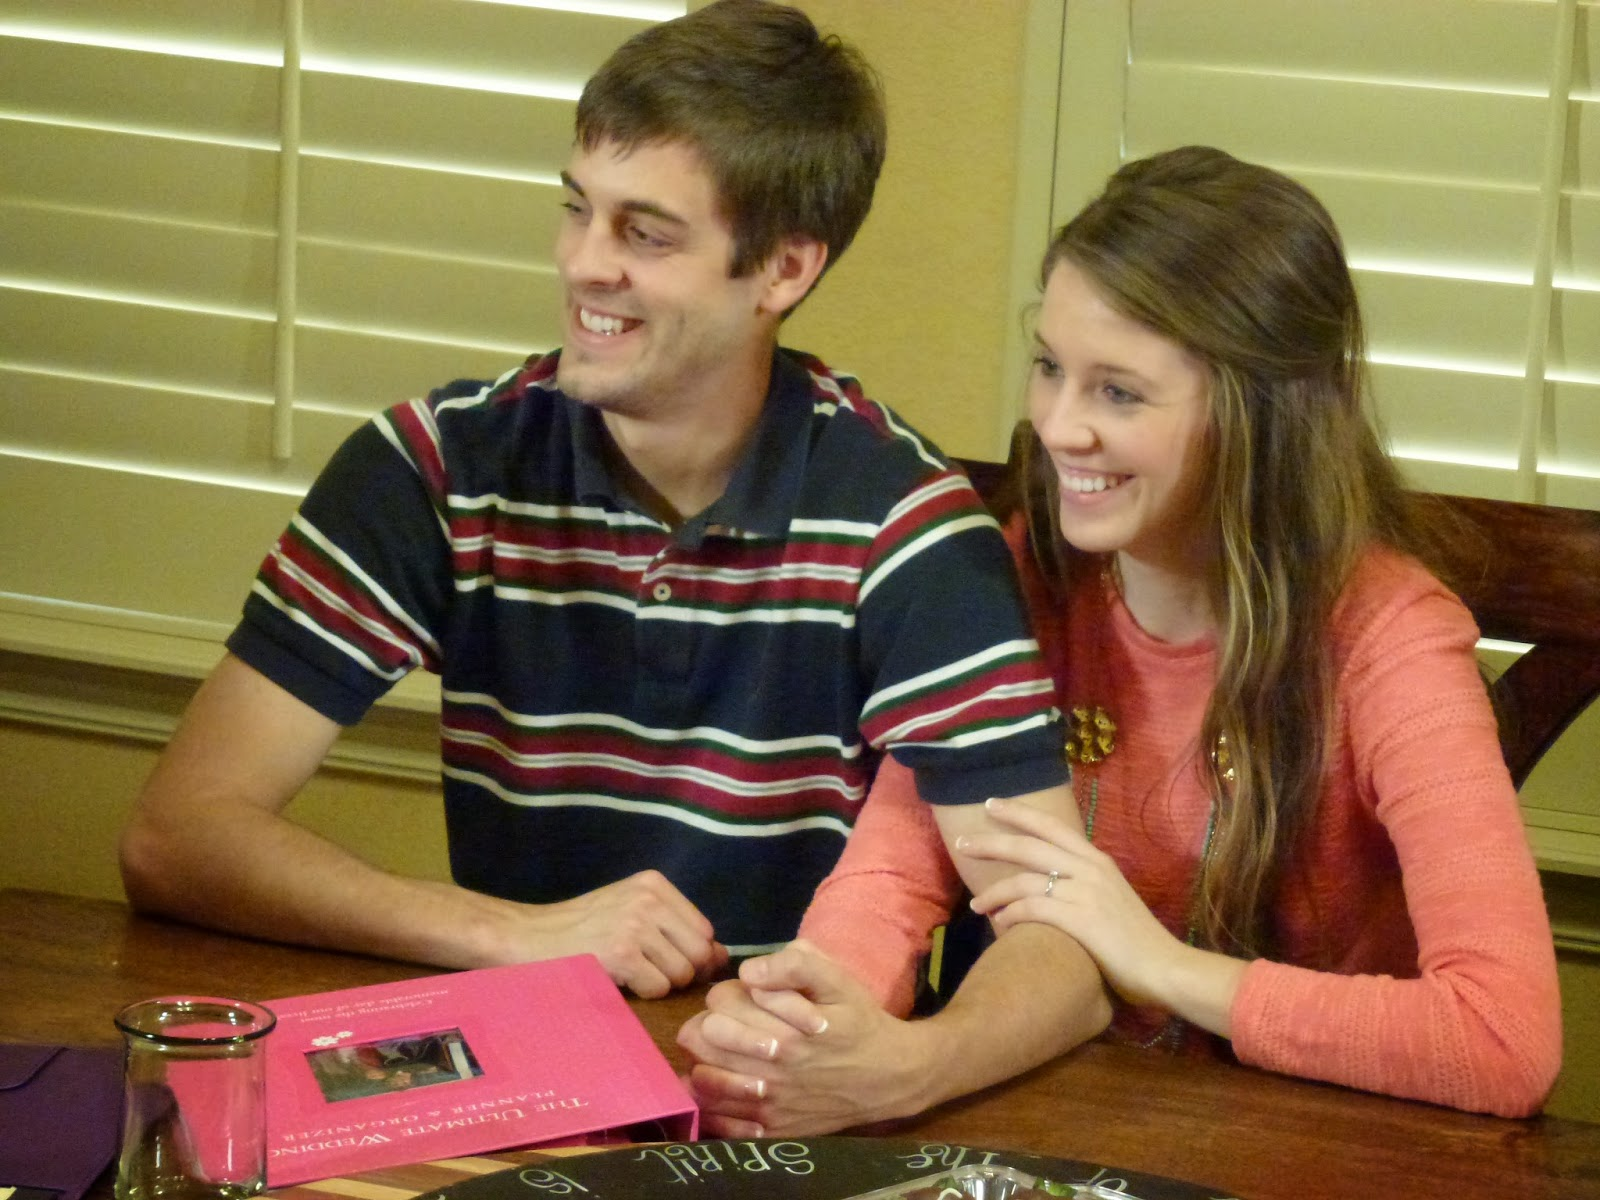 Derick Dillard and Jill Duggar